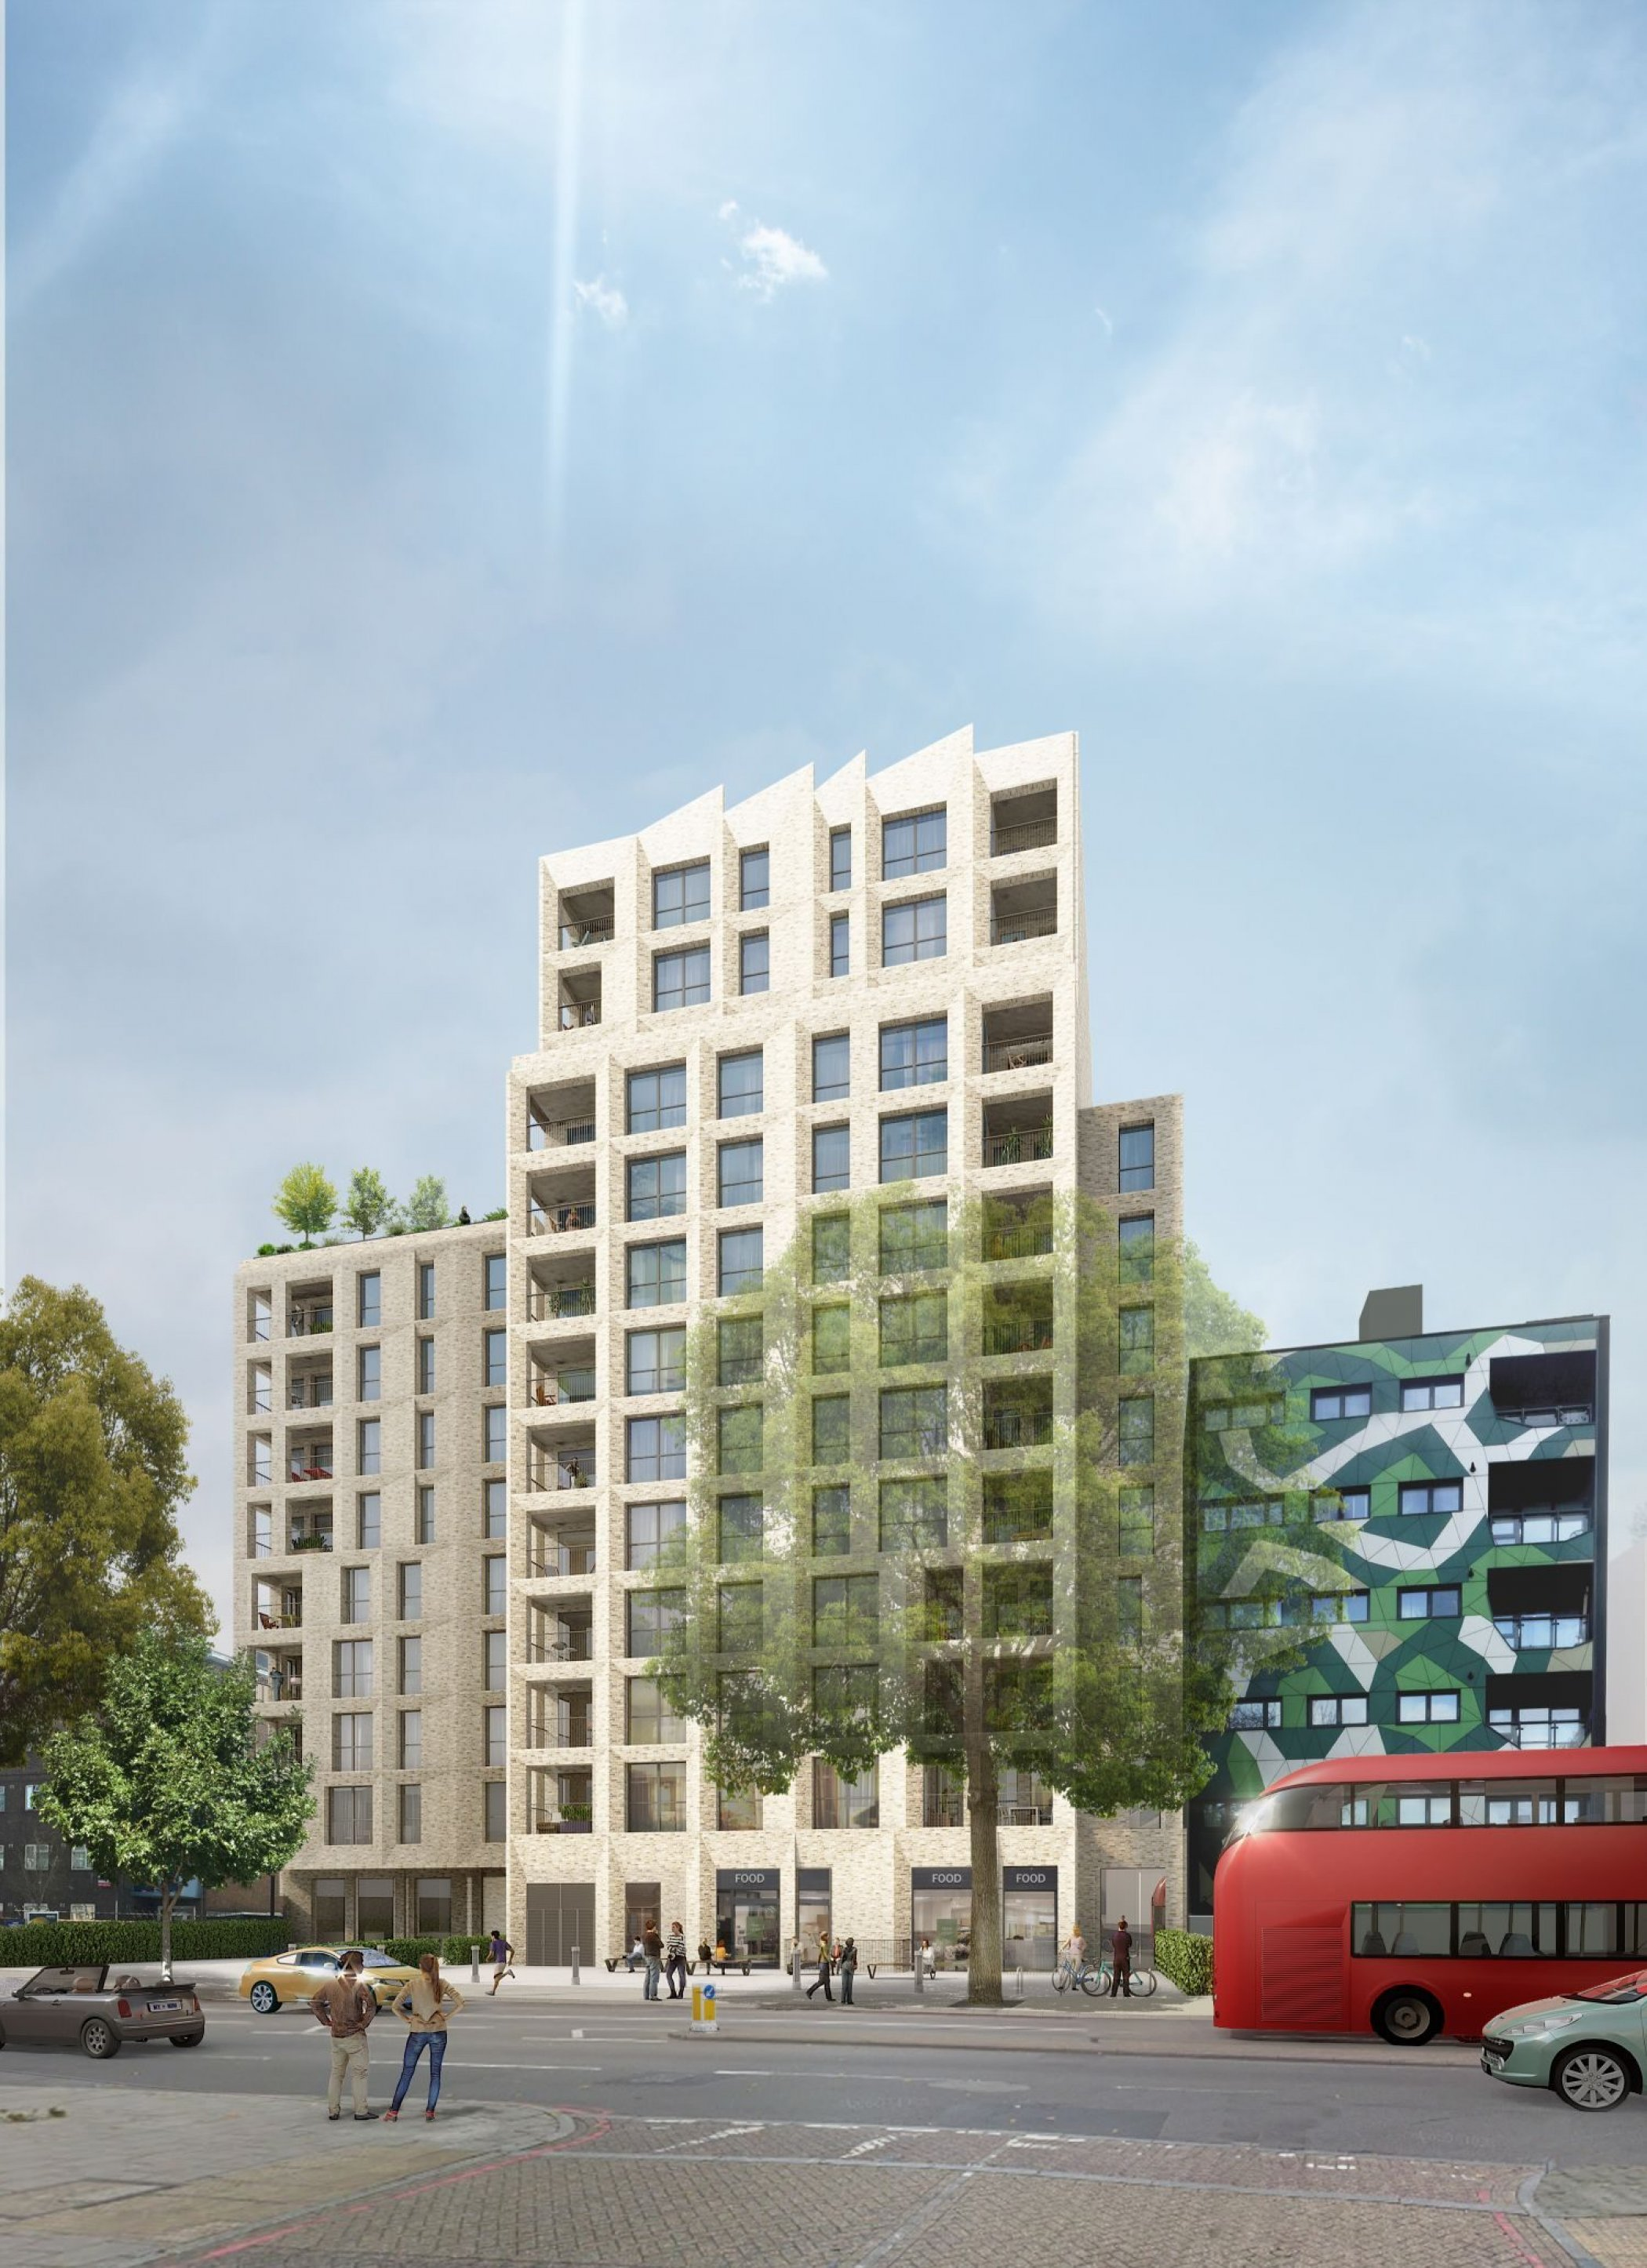 ColladoCollins wins planning for mixed-use scheme on New Kent Road